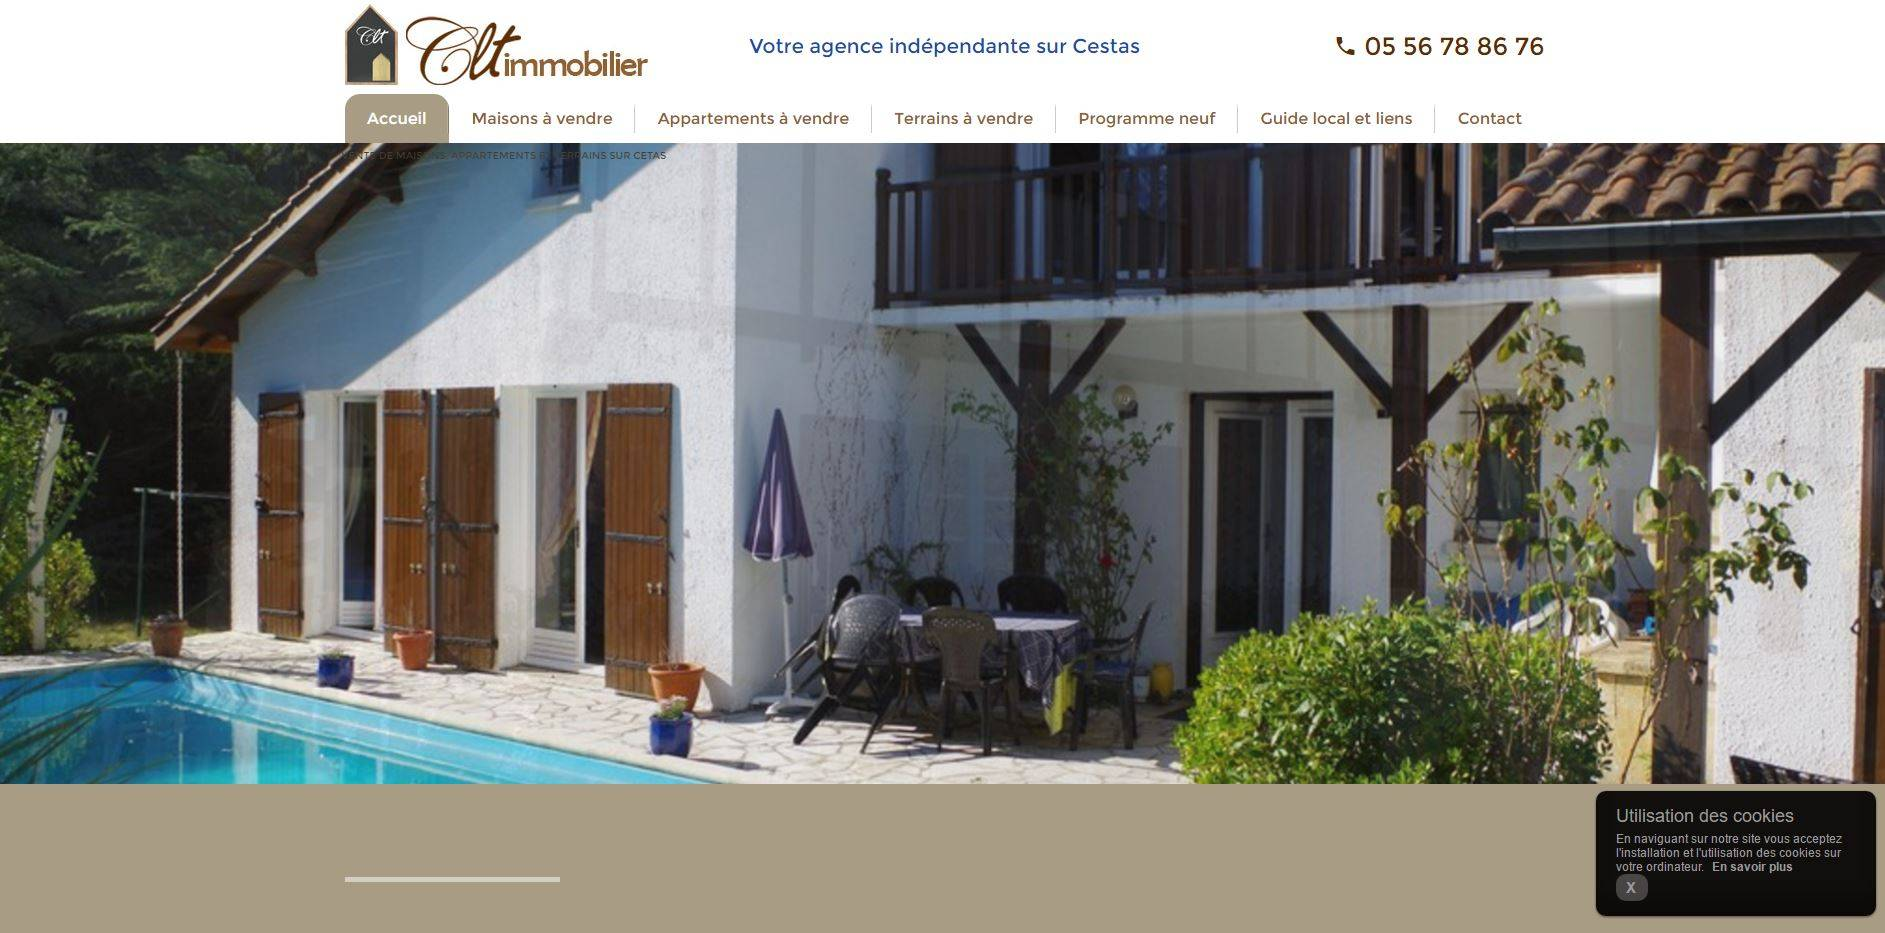 Clt immobilier agence immobili re cestas agences for Clt immobilier cestas